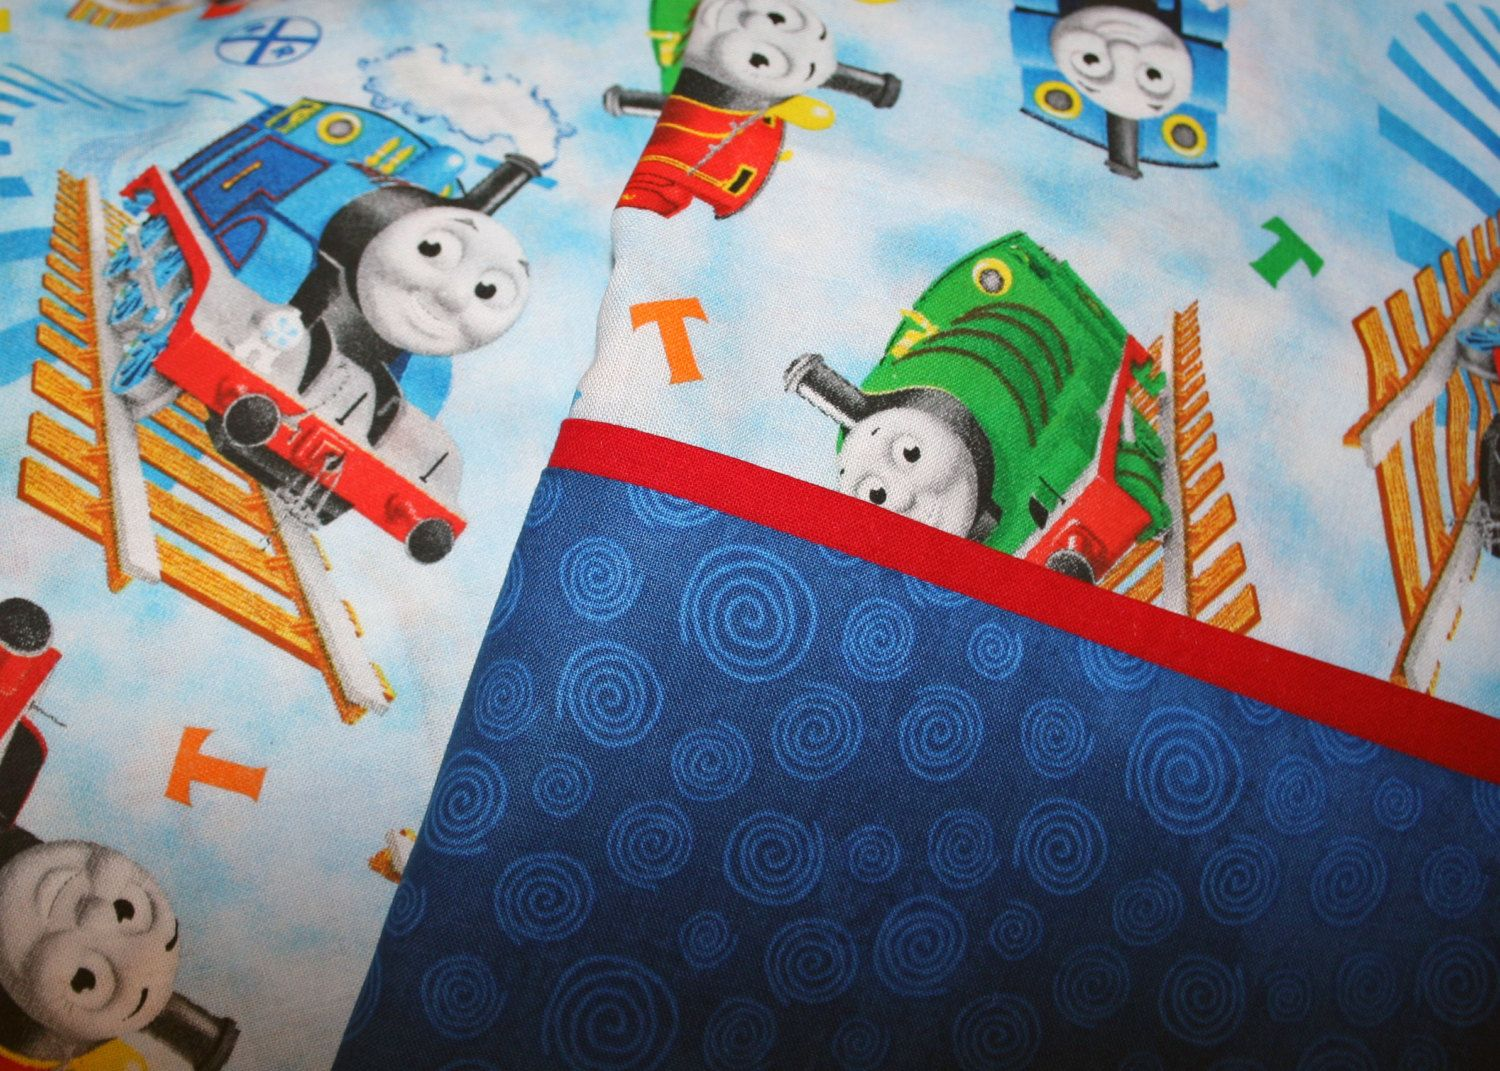 Thomas The Train Pillowcase Gorgeous Thomas The Train Pillowcasesewnmyway On Etsy  Stuff To Buy Review